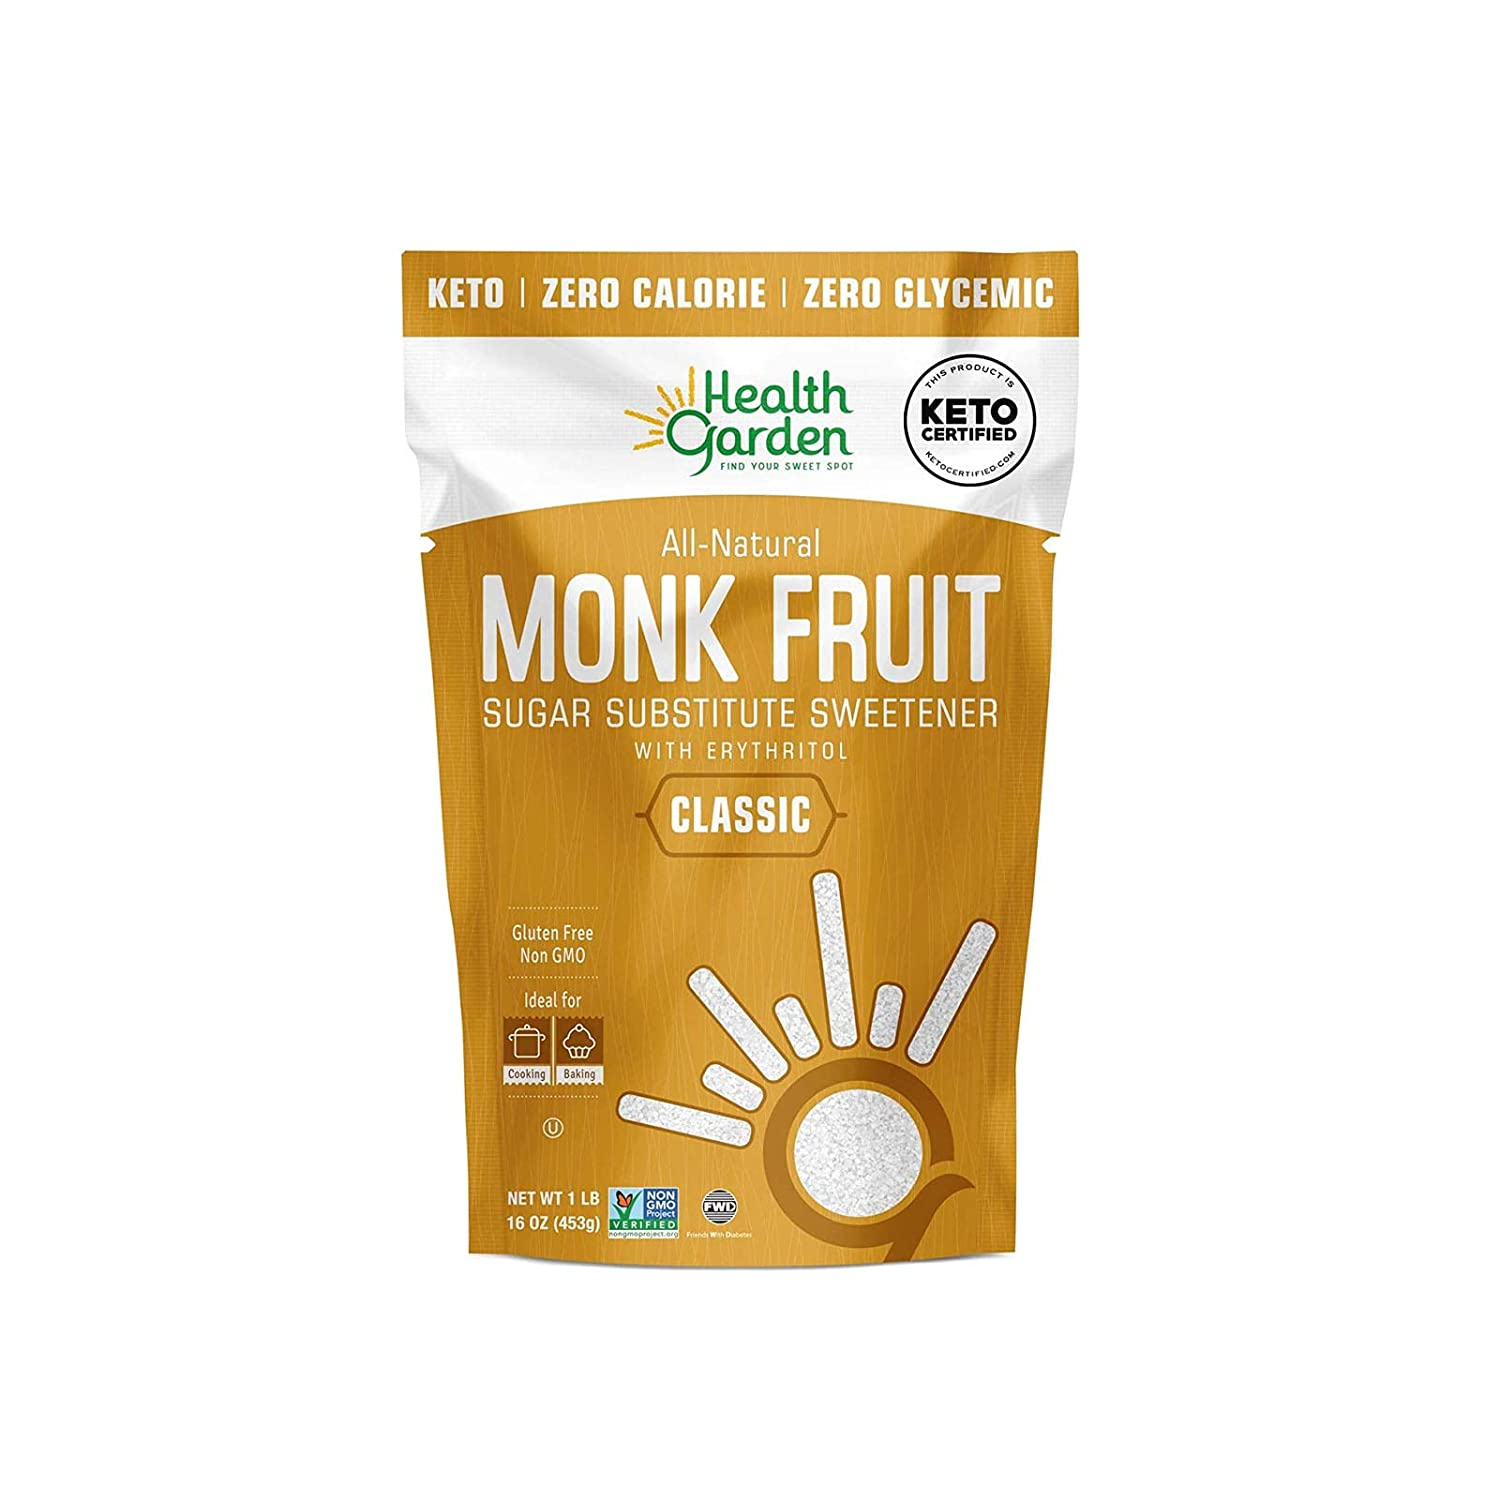 Health Garden Monk Fruit Sweetener, Classic - Non GMO - Gluten Free - Sugar Substitute - Kosher - Keto Friendly (1 lb X 2)